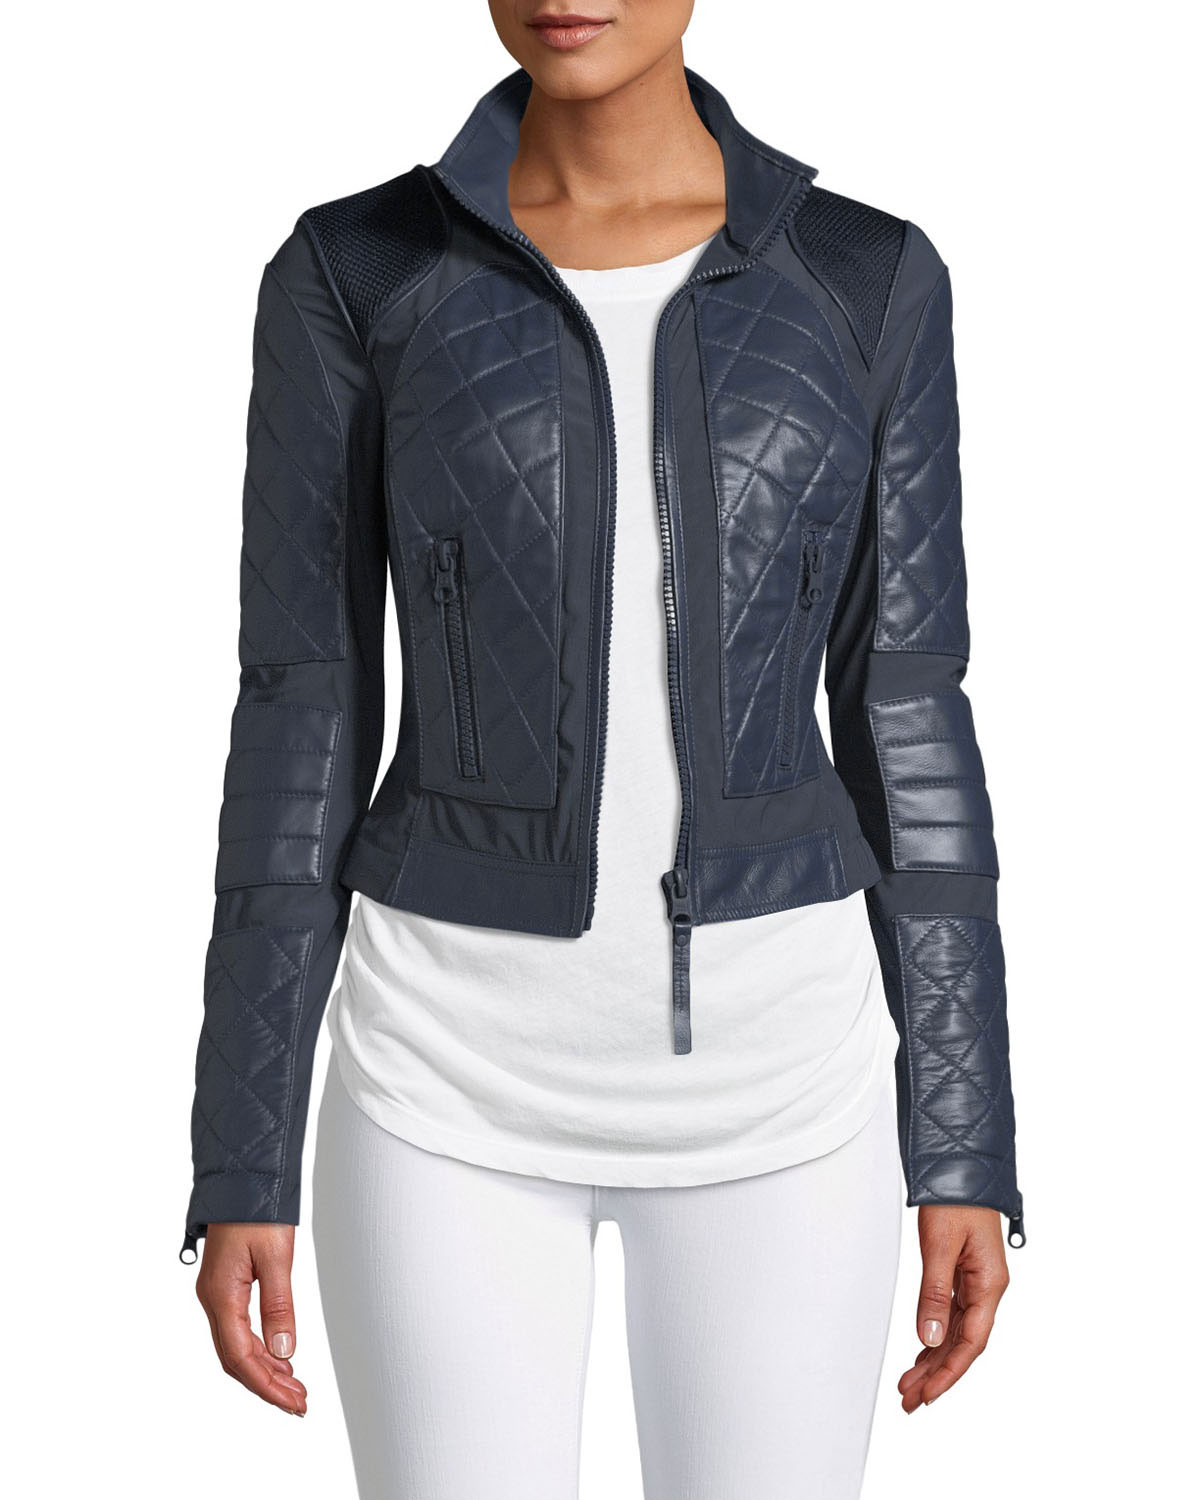 Blanc Noir Quilted Leather & Mesh Moto Jacket, NAVY